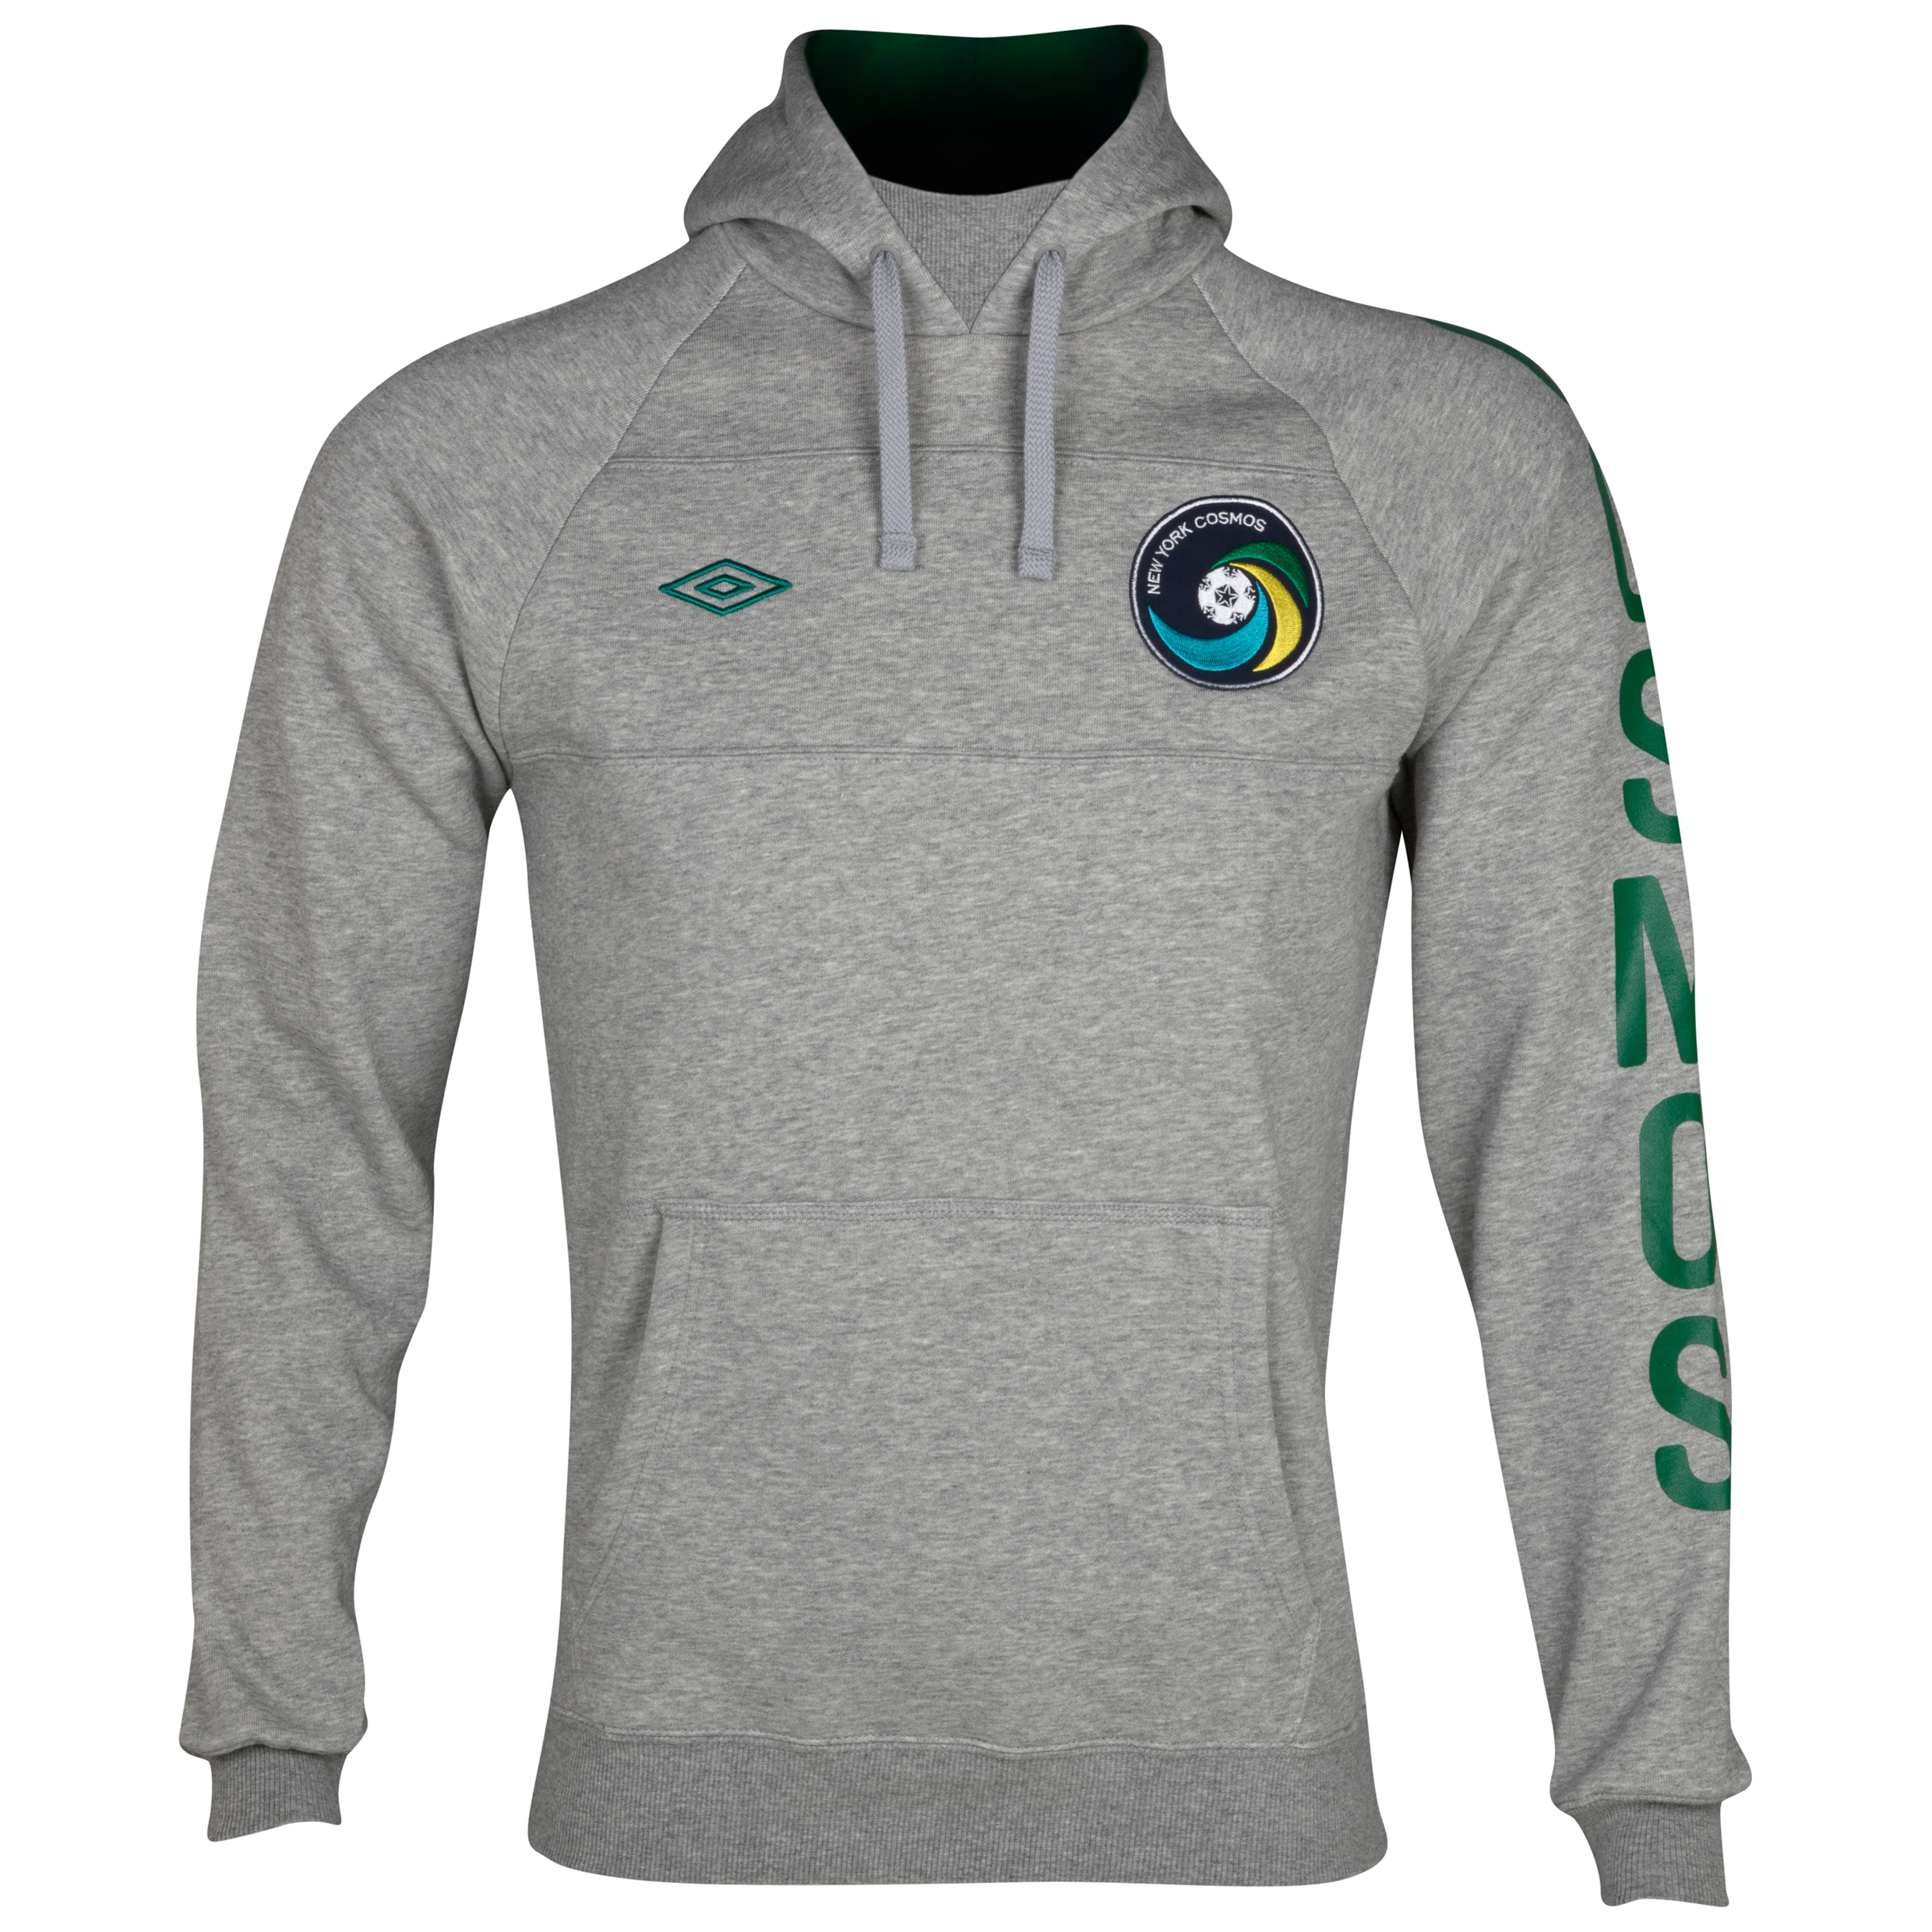 New York Cosmos Hoody - Grey Narl/Pine Green